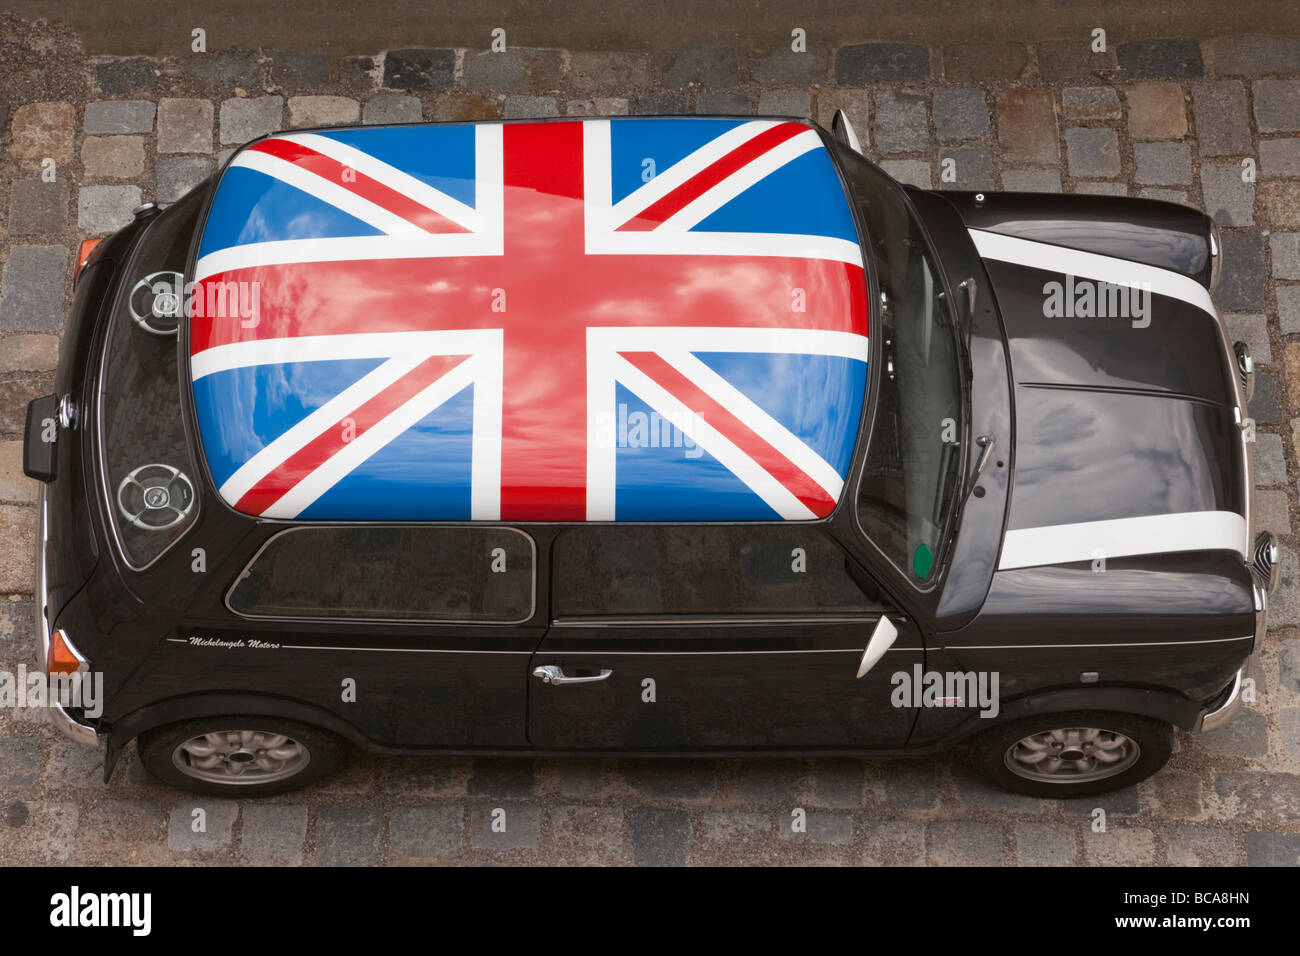 Design of car jack - Europe Union Jack Painted On Roof Of A Black Mini Car From Above